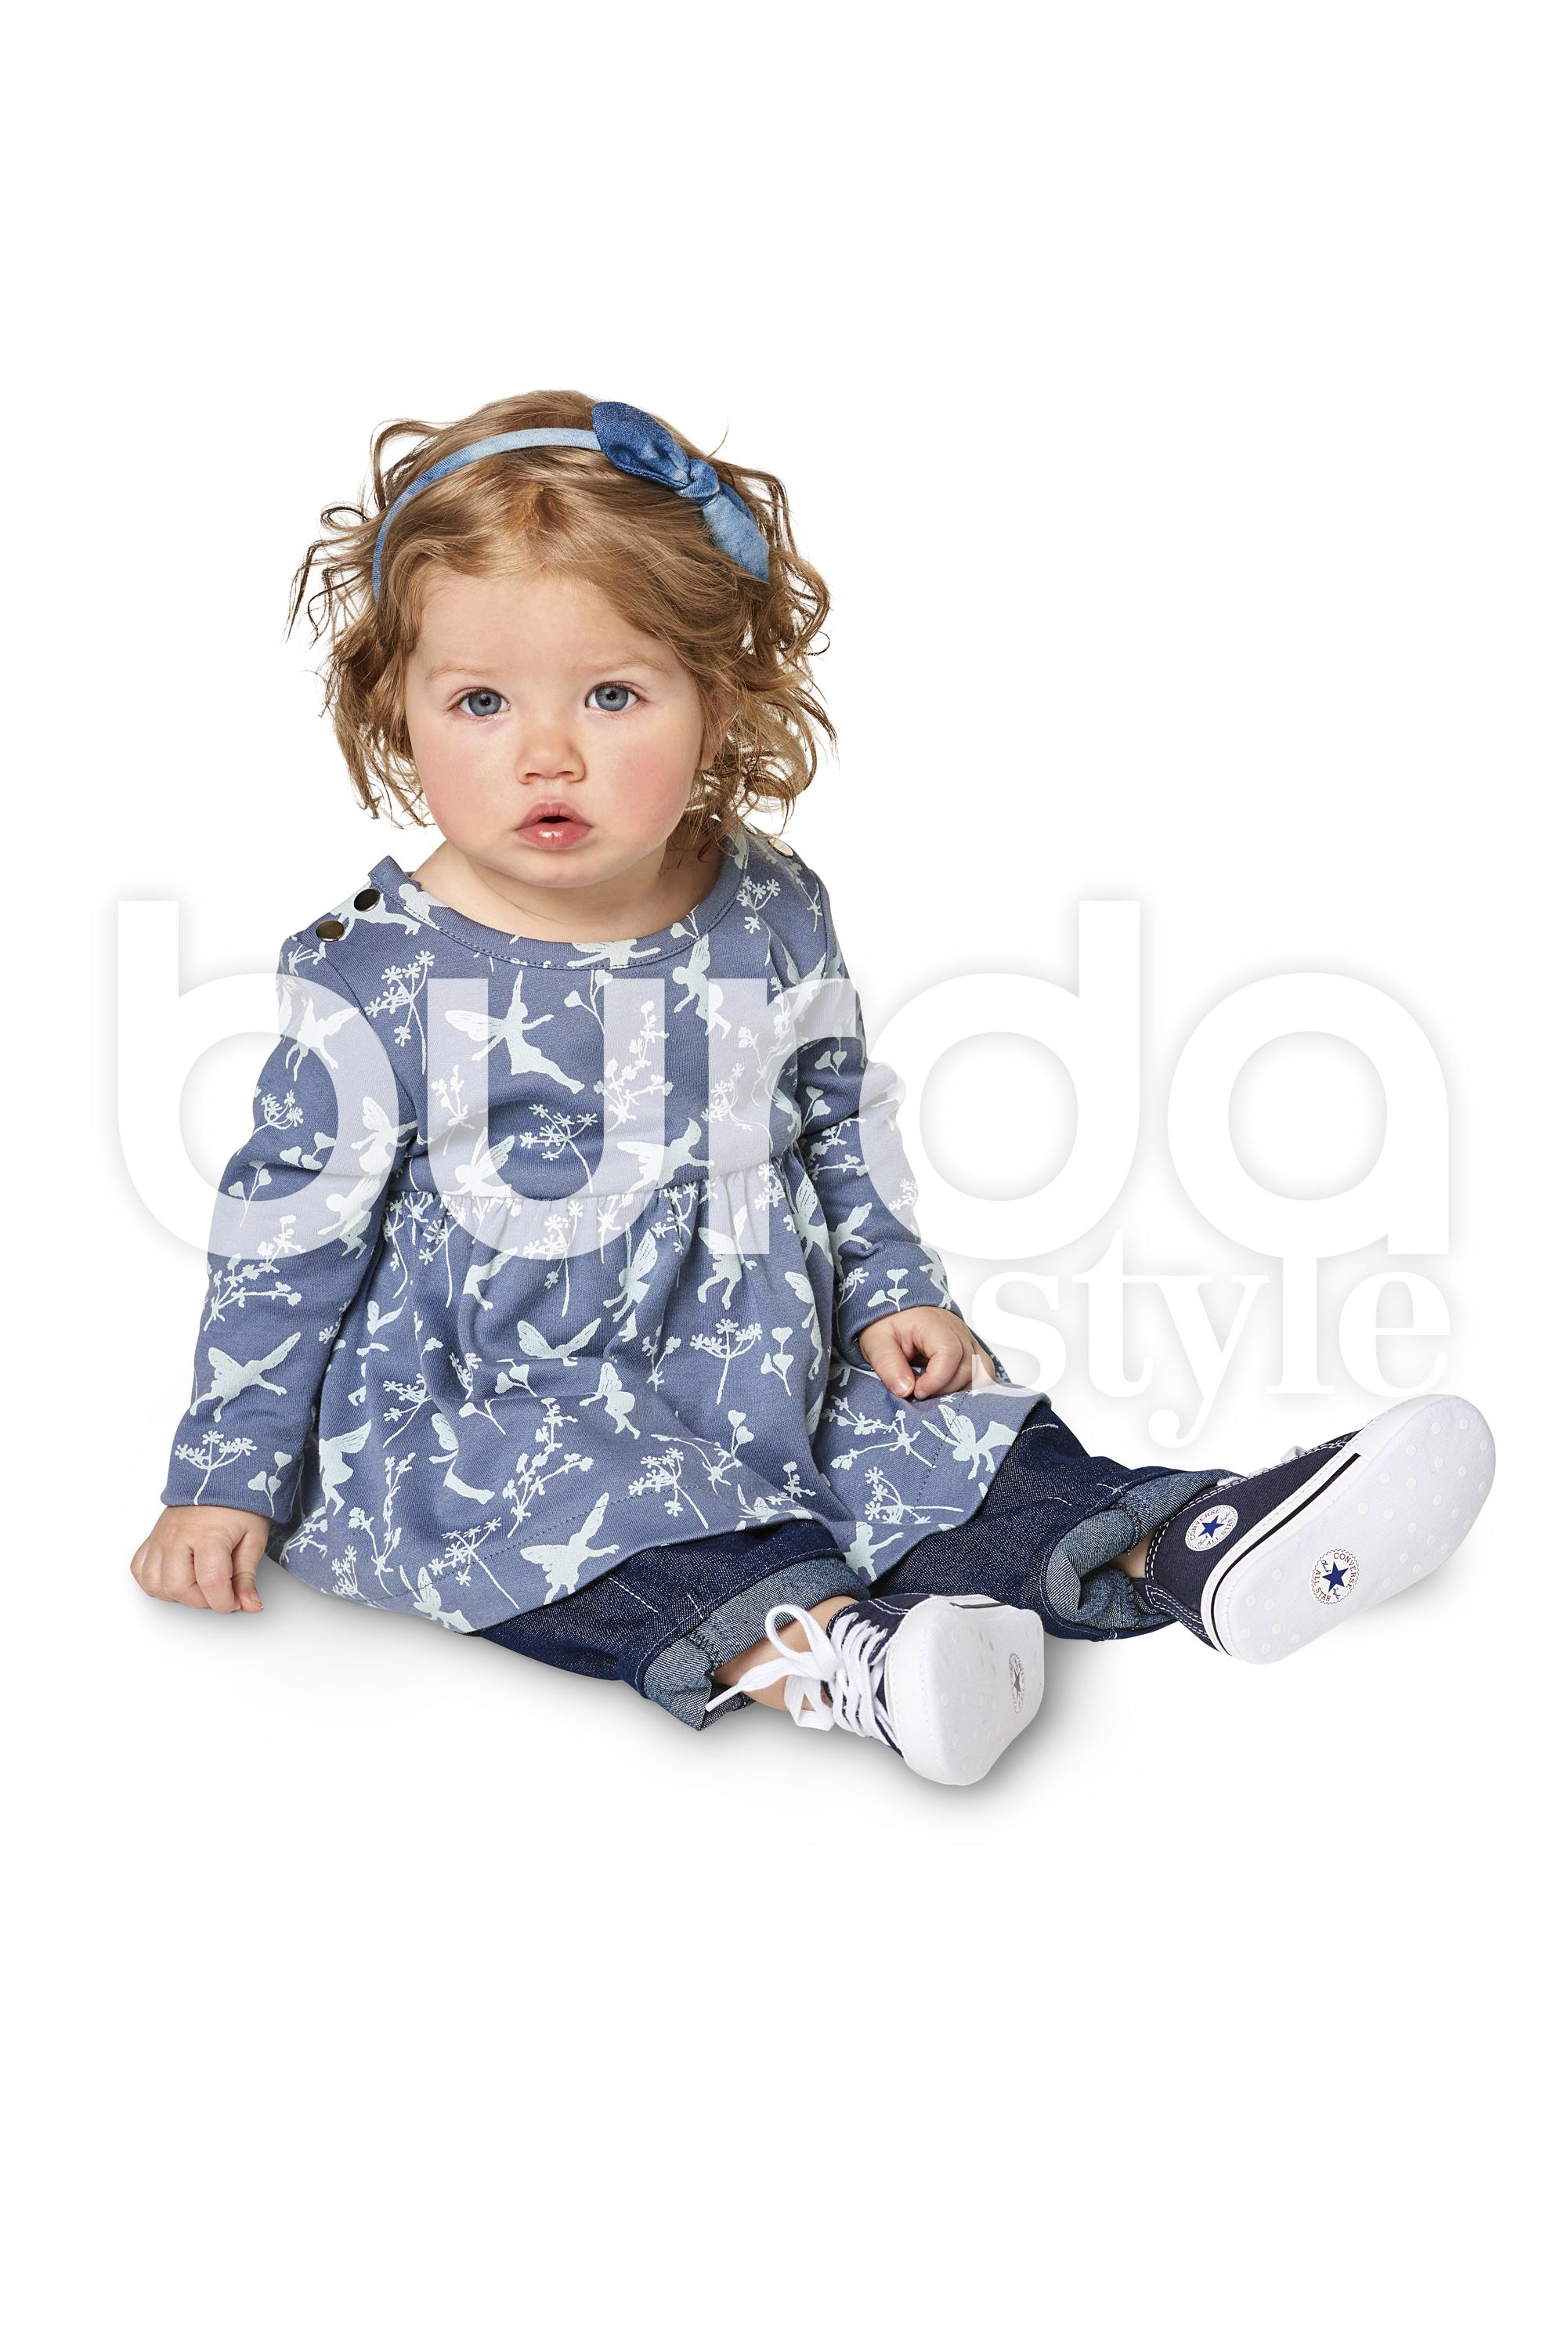 Burda B9347 Baby's Dress and Bodysuit